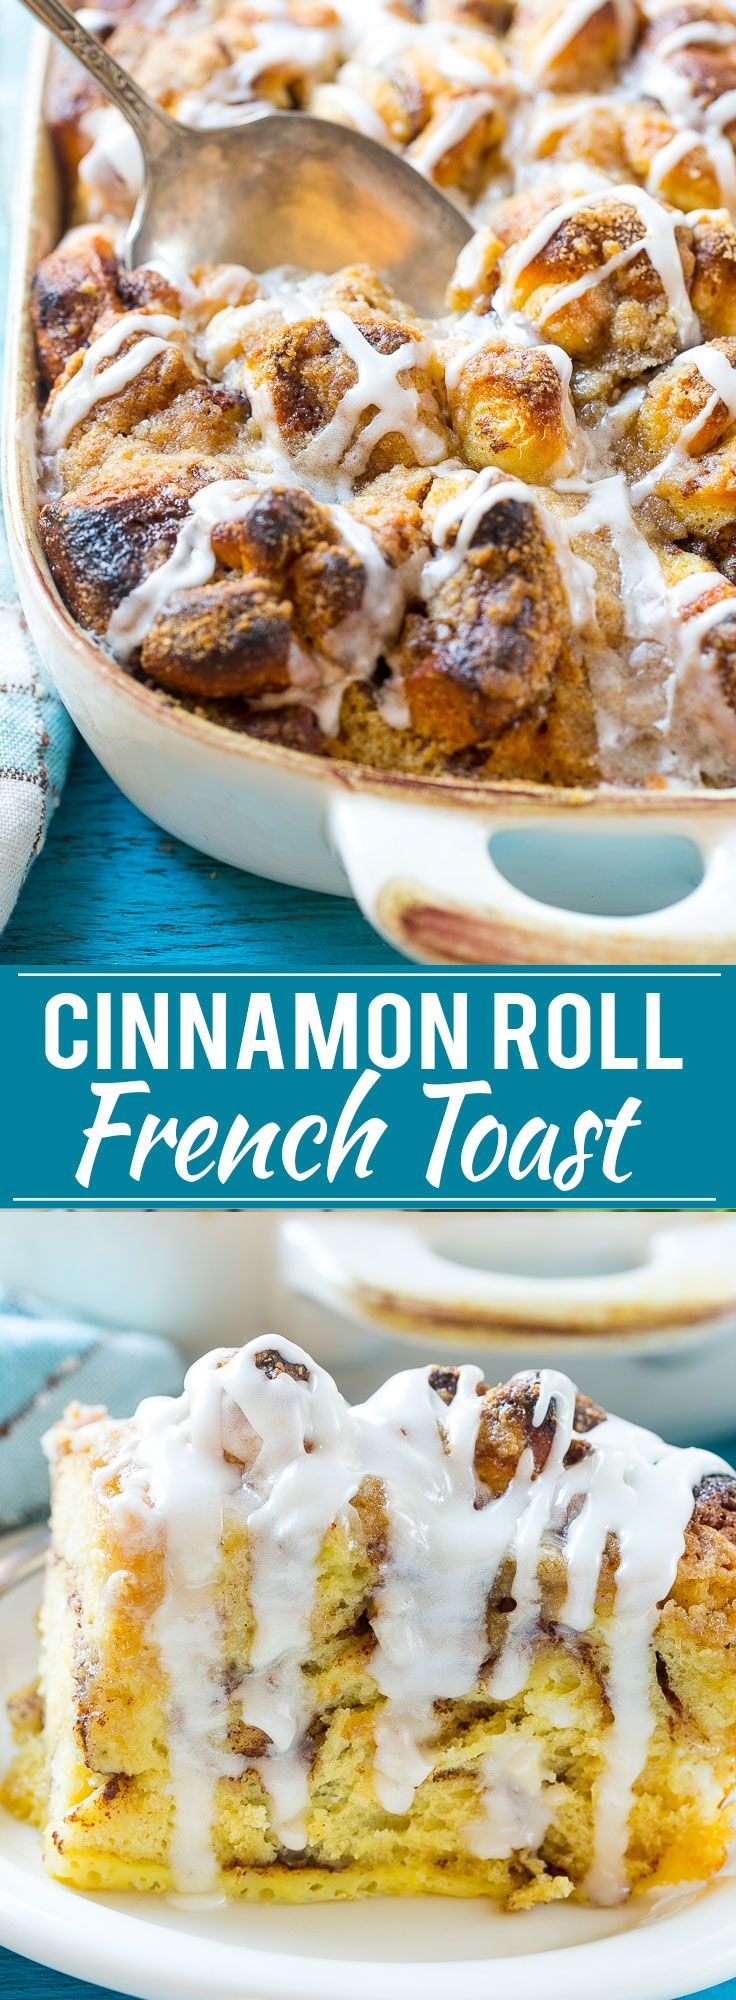 This cinnamon roll french toast casserole recipe is so simple to make and is the star of any breakfast or brunch!